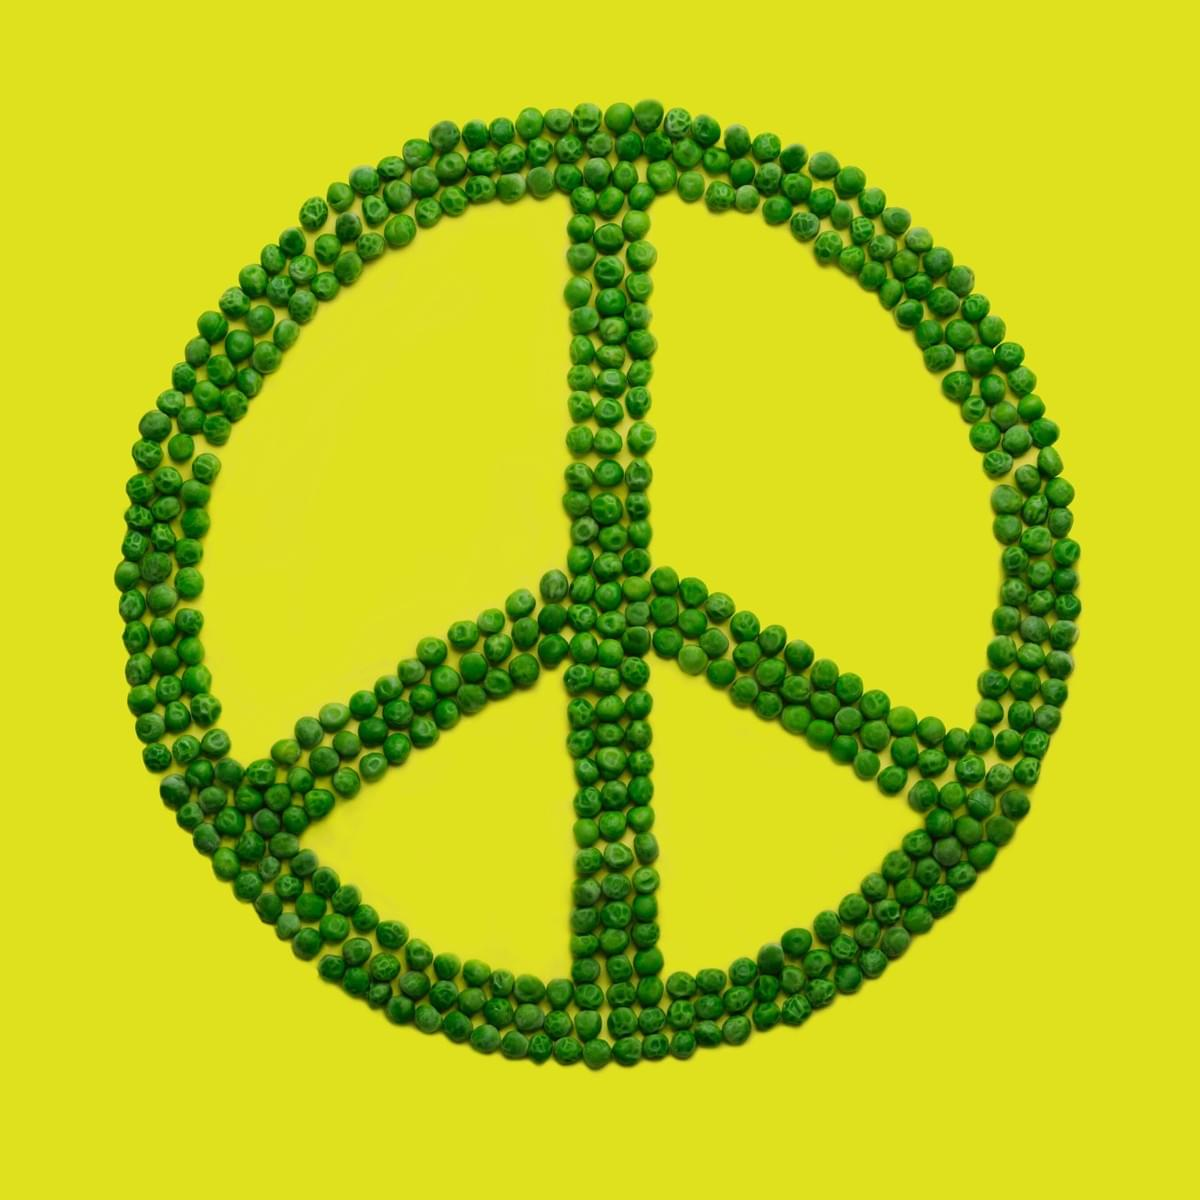 Peace sign made out of green peas- The Purple Dog Vegan special announcement post about the release of Give Peas a Chance, the first cookbook from The Purple Dog Vegan